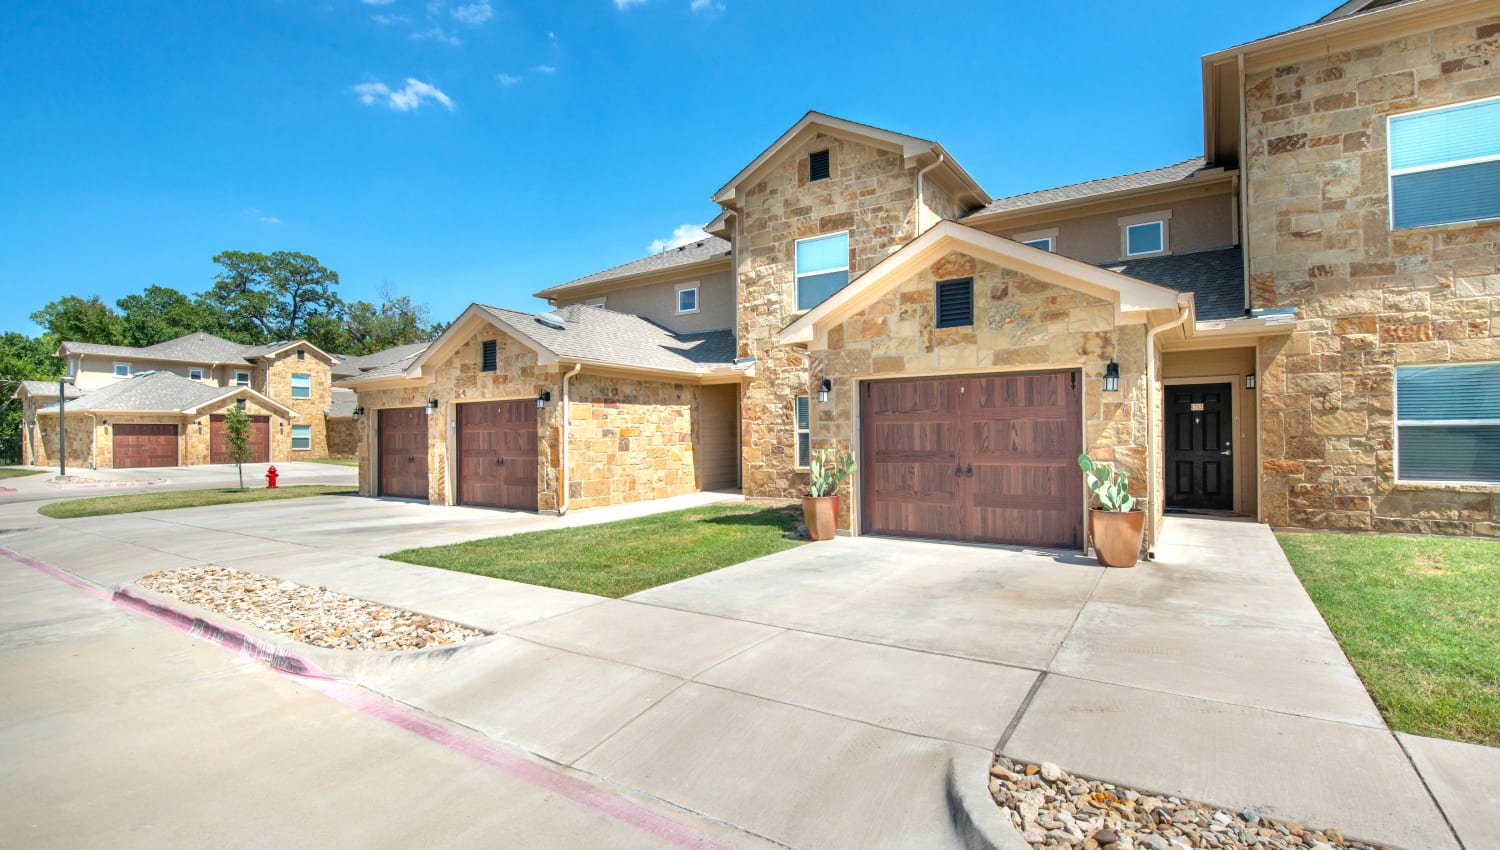 Private garages available at Olympus Willow Park in Willow Park, Texas